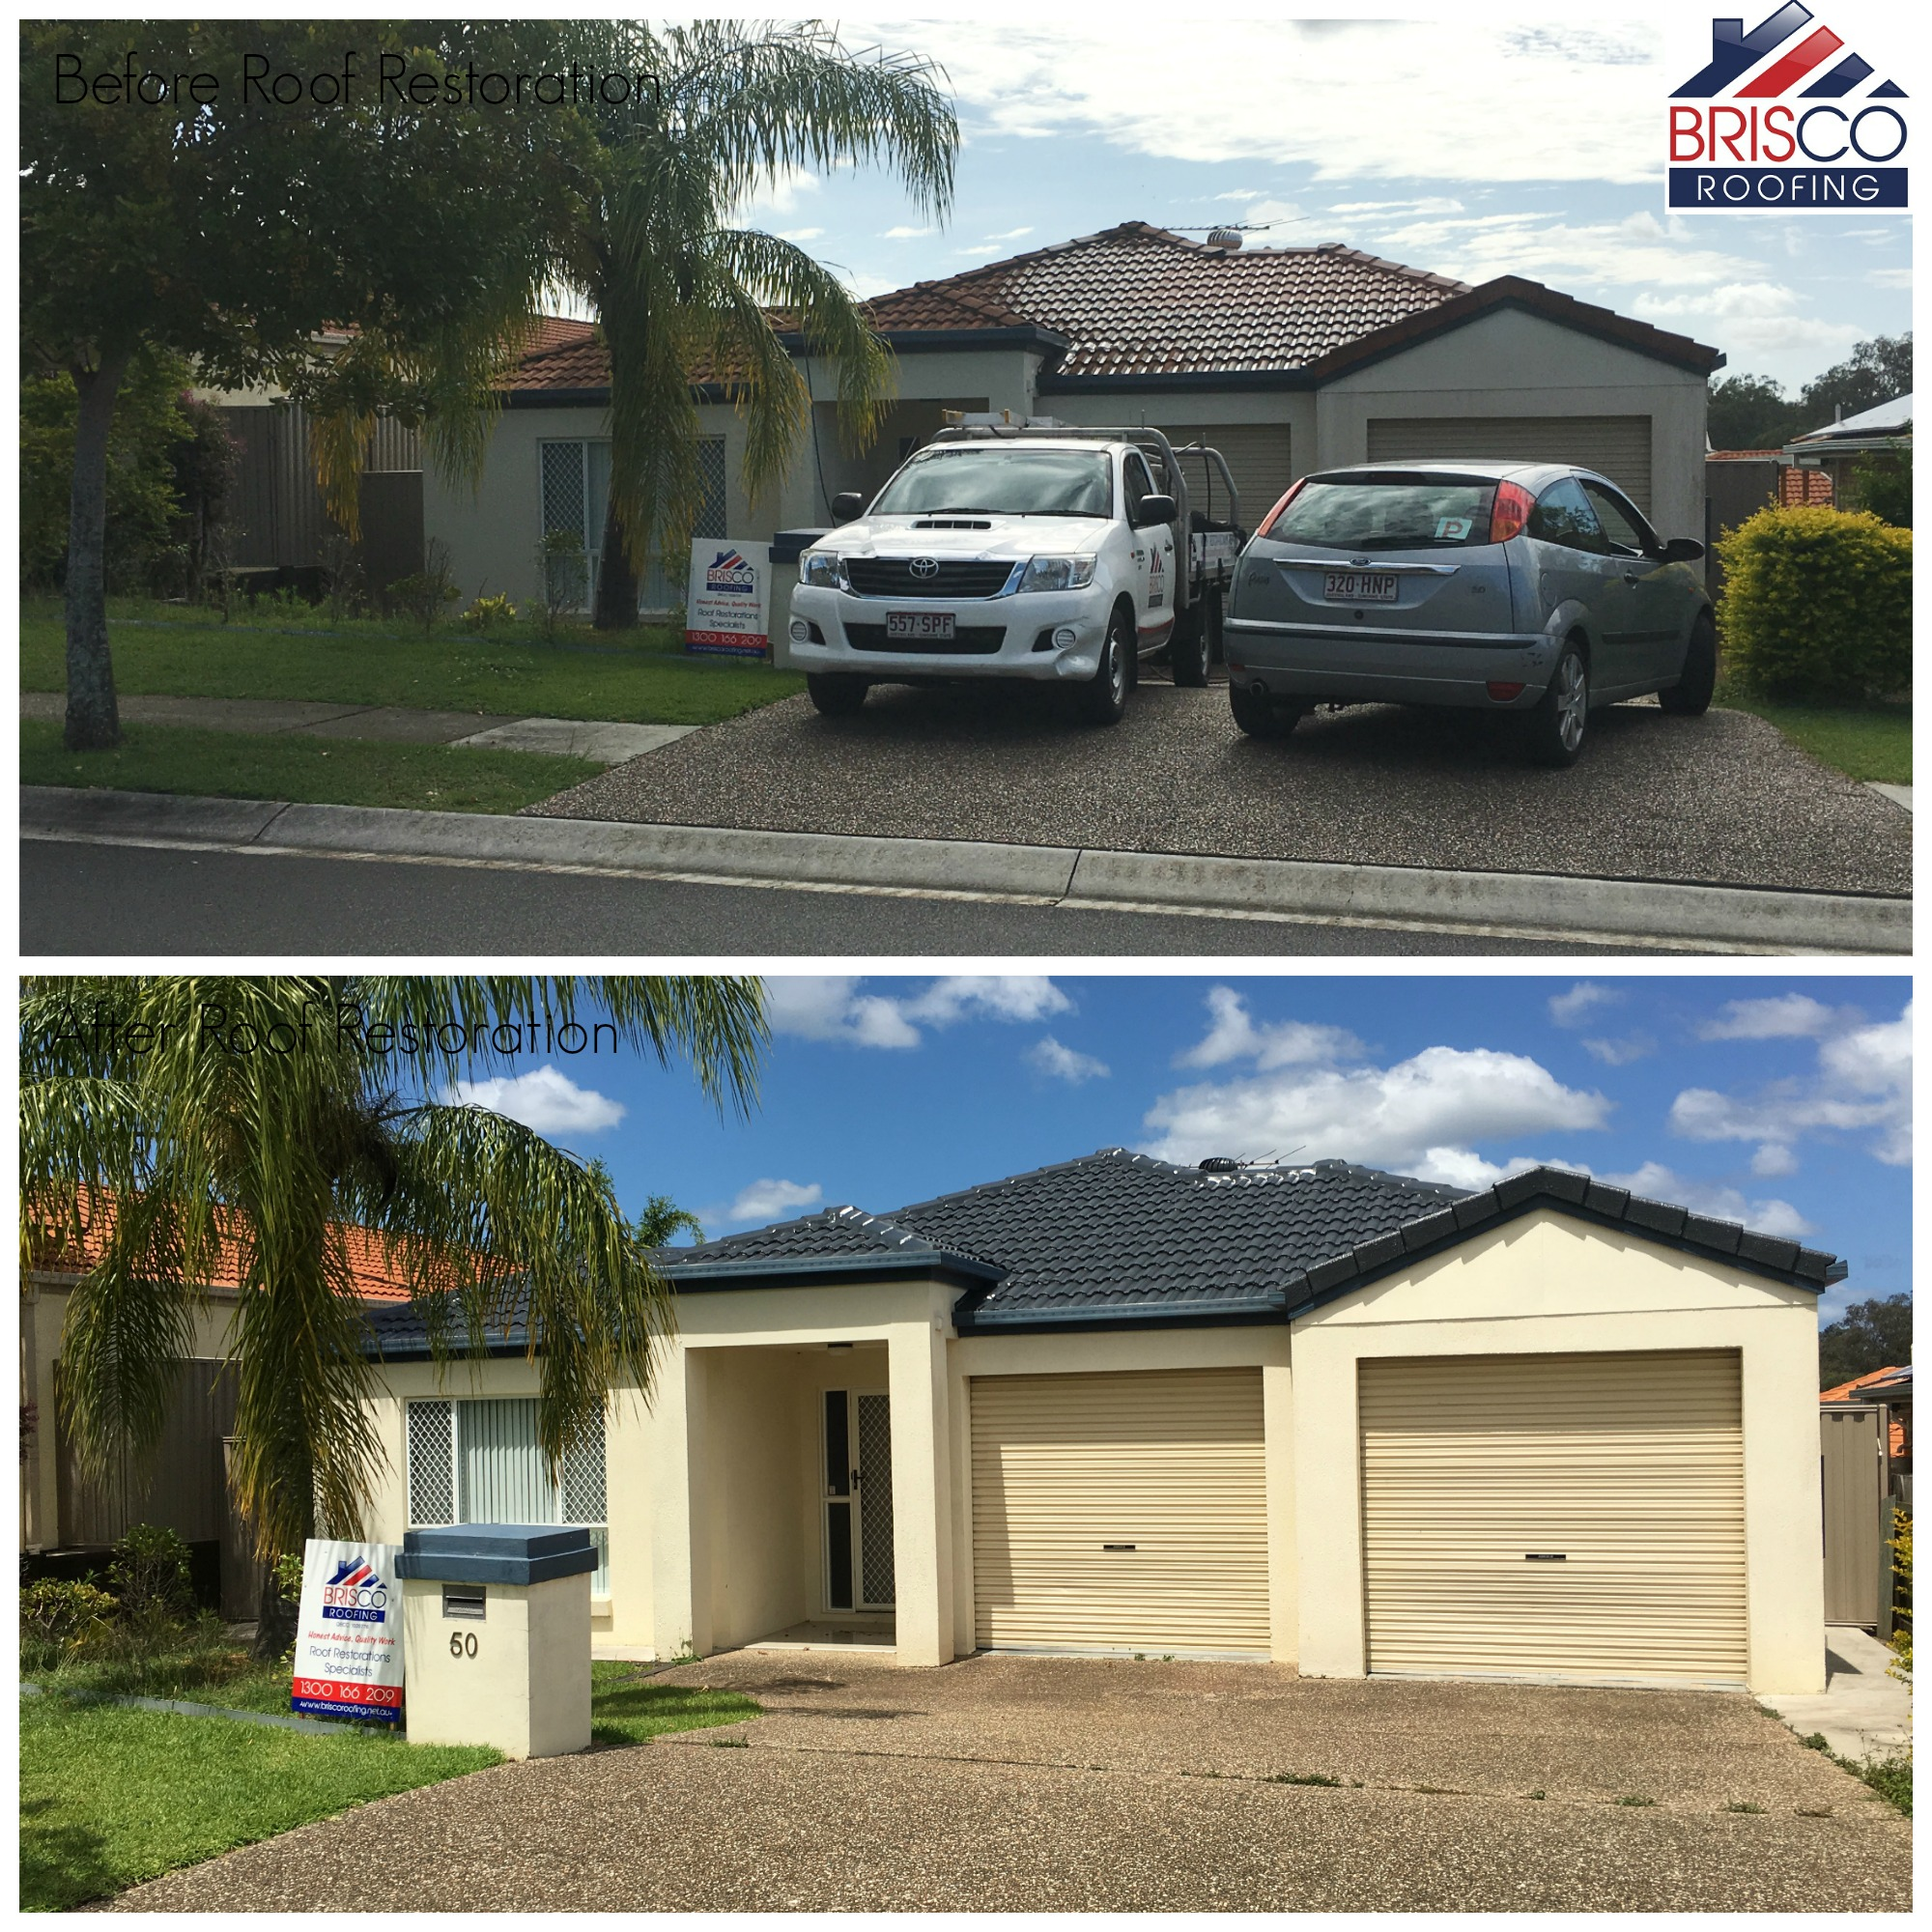 Roof Restoration Before and After Gallery Brisbane 10